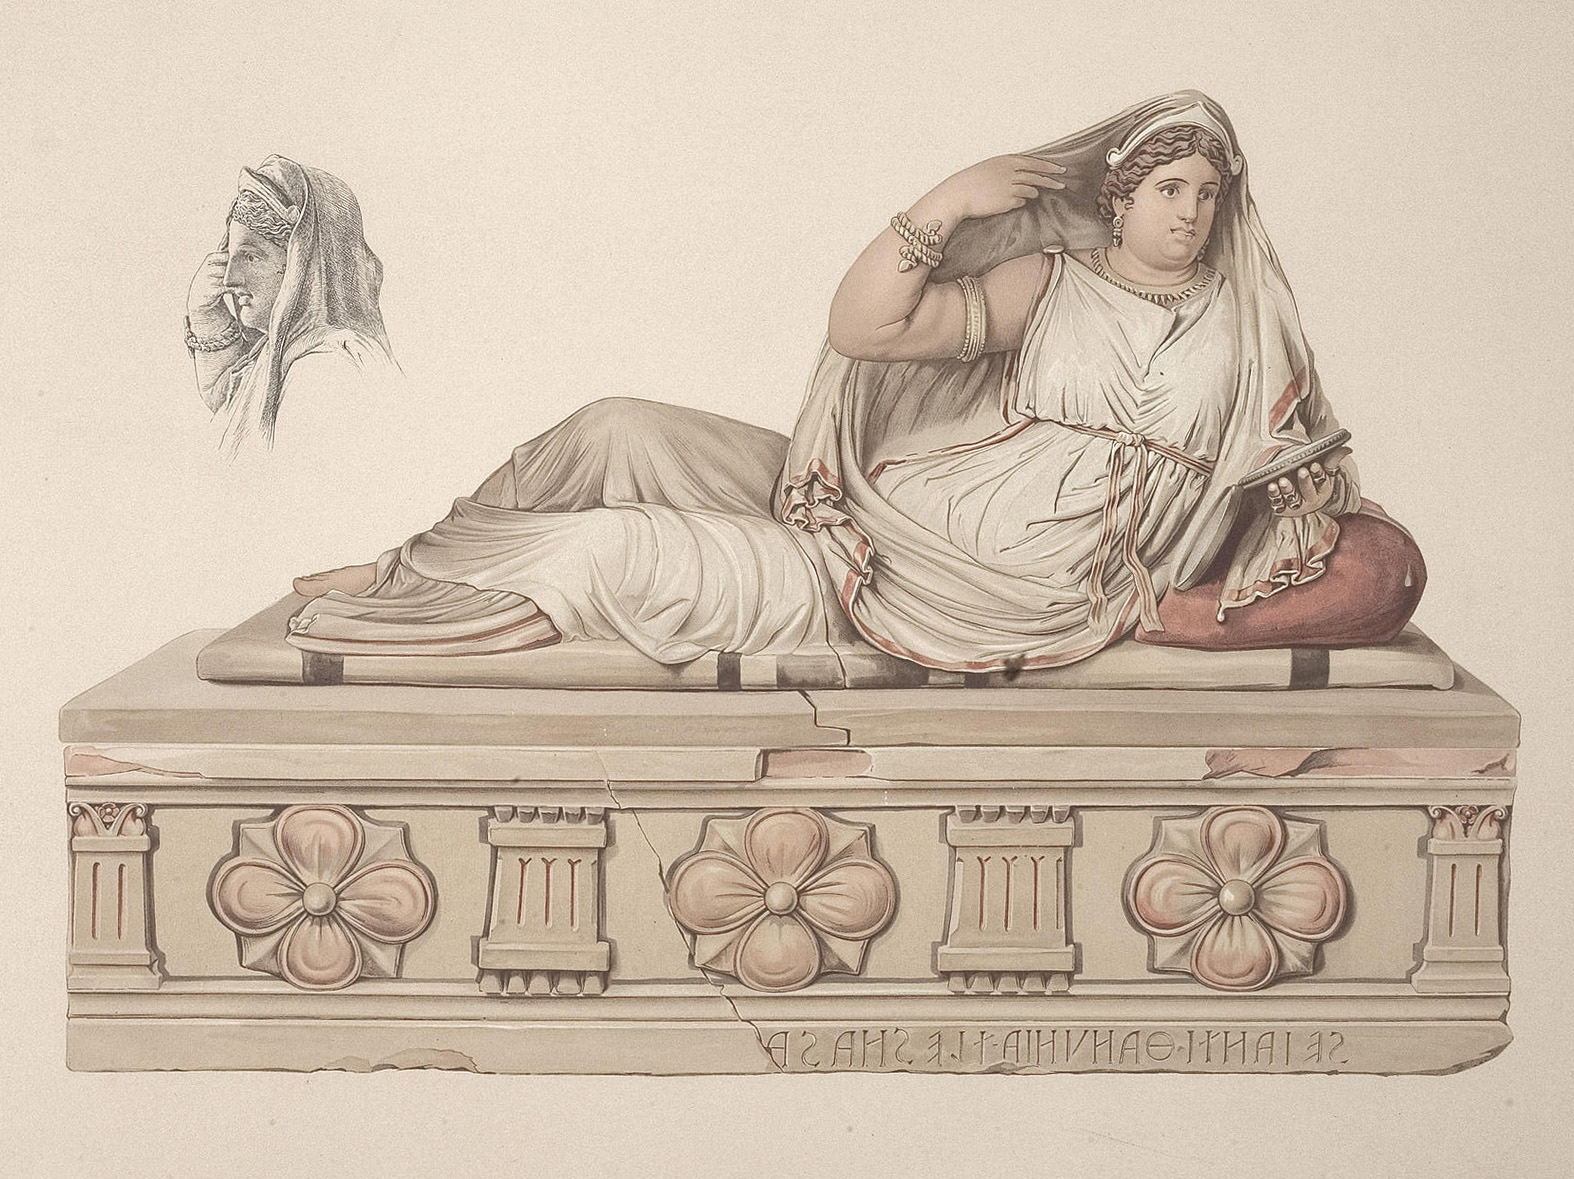 Sarcophagus of woman from the Seanti family. Clay. 2nd century BCE. Drawing after a watercolour 1886 by painter F. Eichler. London, The British Museum